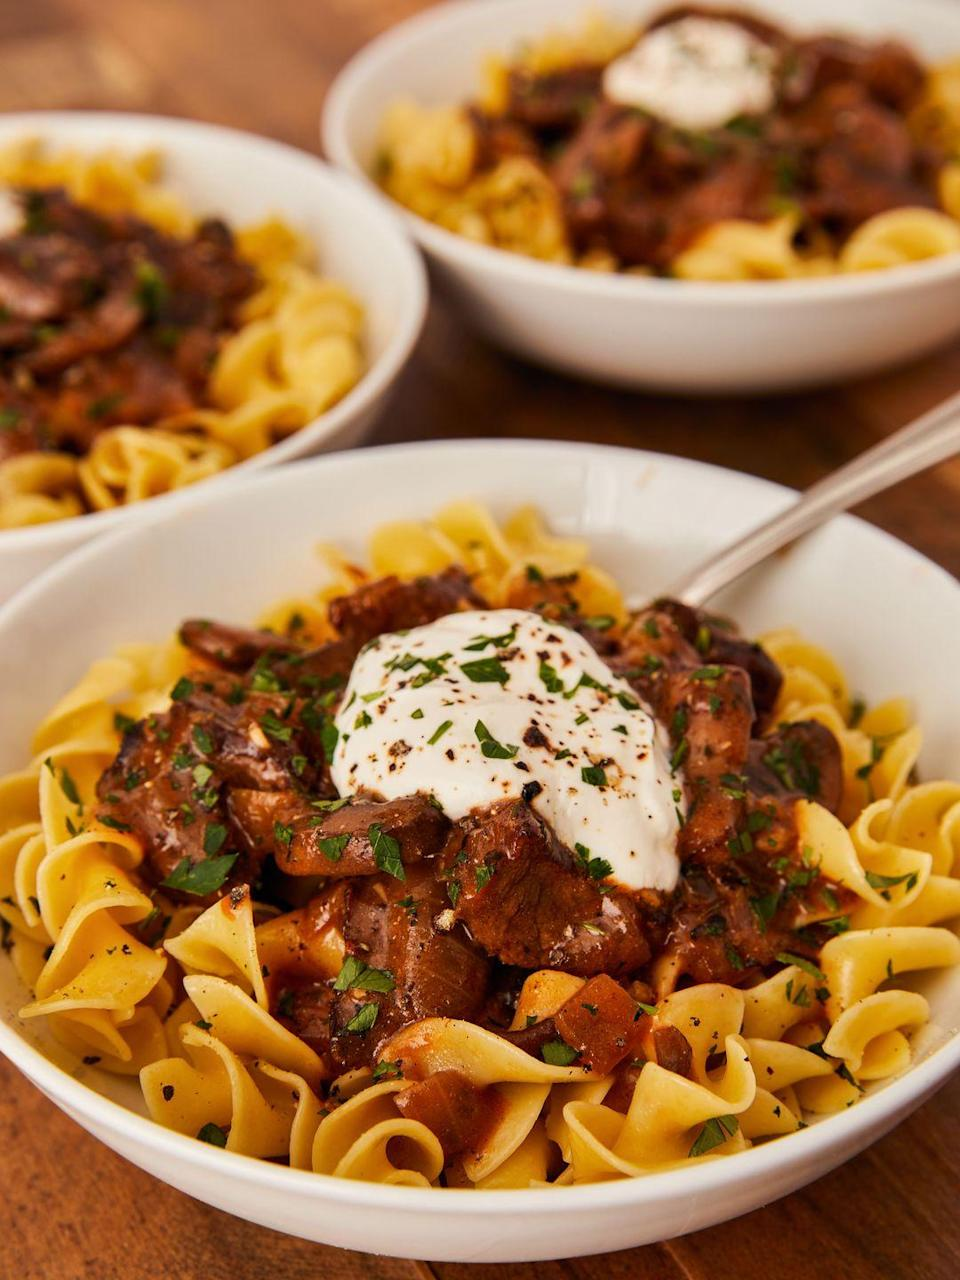 "<p>Skip the beef chuck and make a short-cut stroganoff that's just as tasty.</p><p>Get the recipe from <a href=""https://www.delish.com/cooking/recipe-ideas/a23572583/beef-stroganoff-recipe/"" rel=""nofollow noopener"" target=""_blank"" data-ylk=""slk:Delish"" class=""link rapid-noclick-resp"">Delish</a>.</p>"